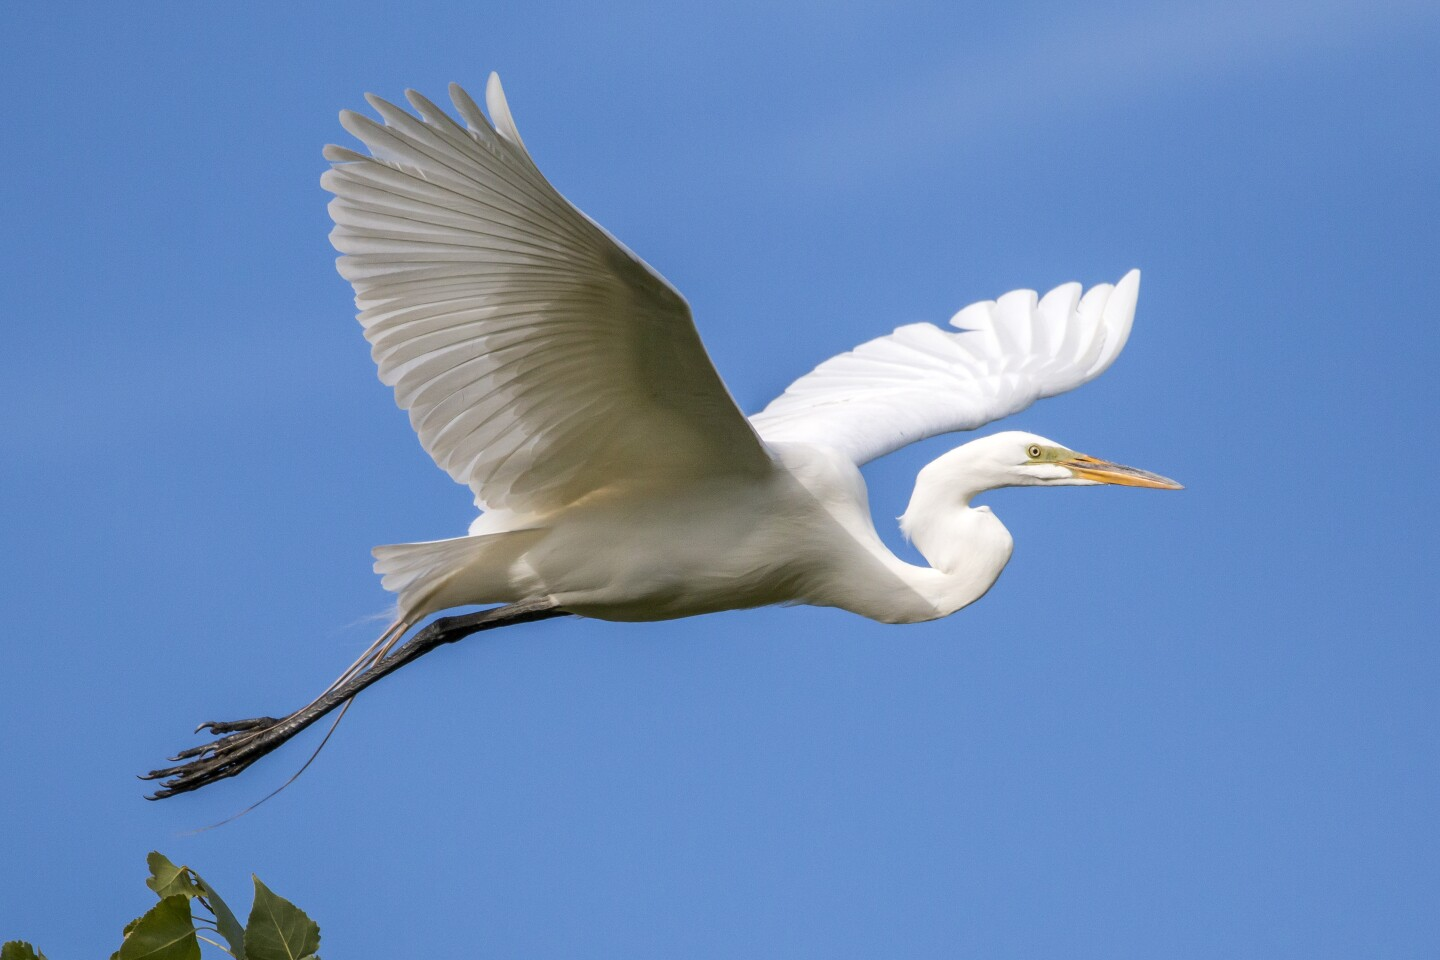 A Great egret takes flight at the Sacramento Wildlife Refuge. Photo by Julie Graulich.